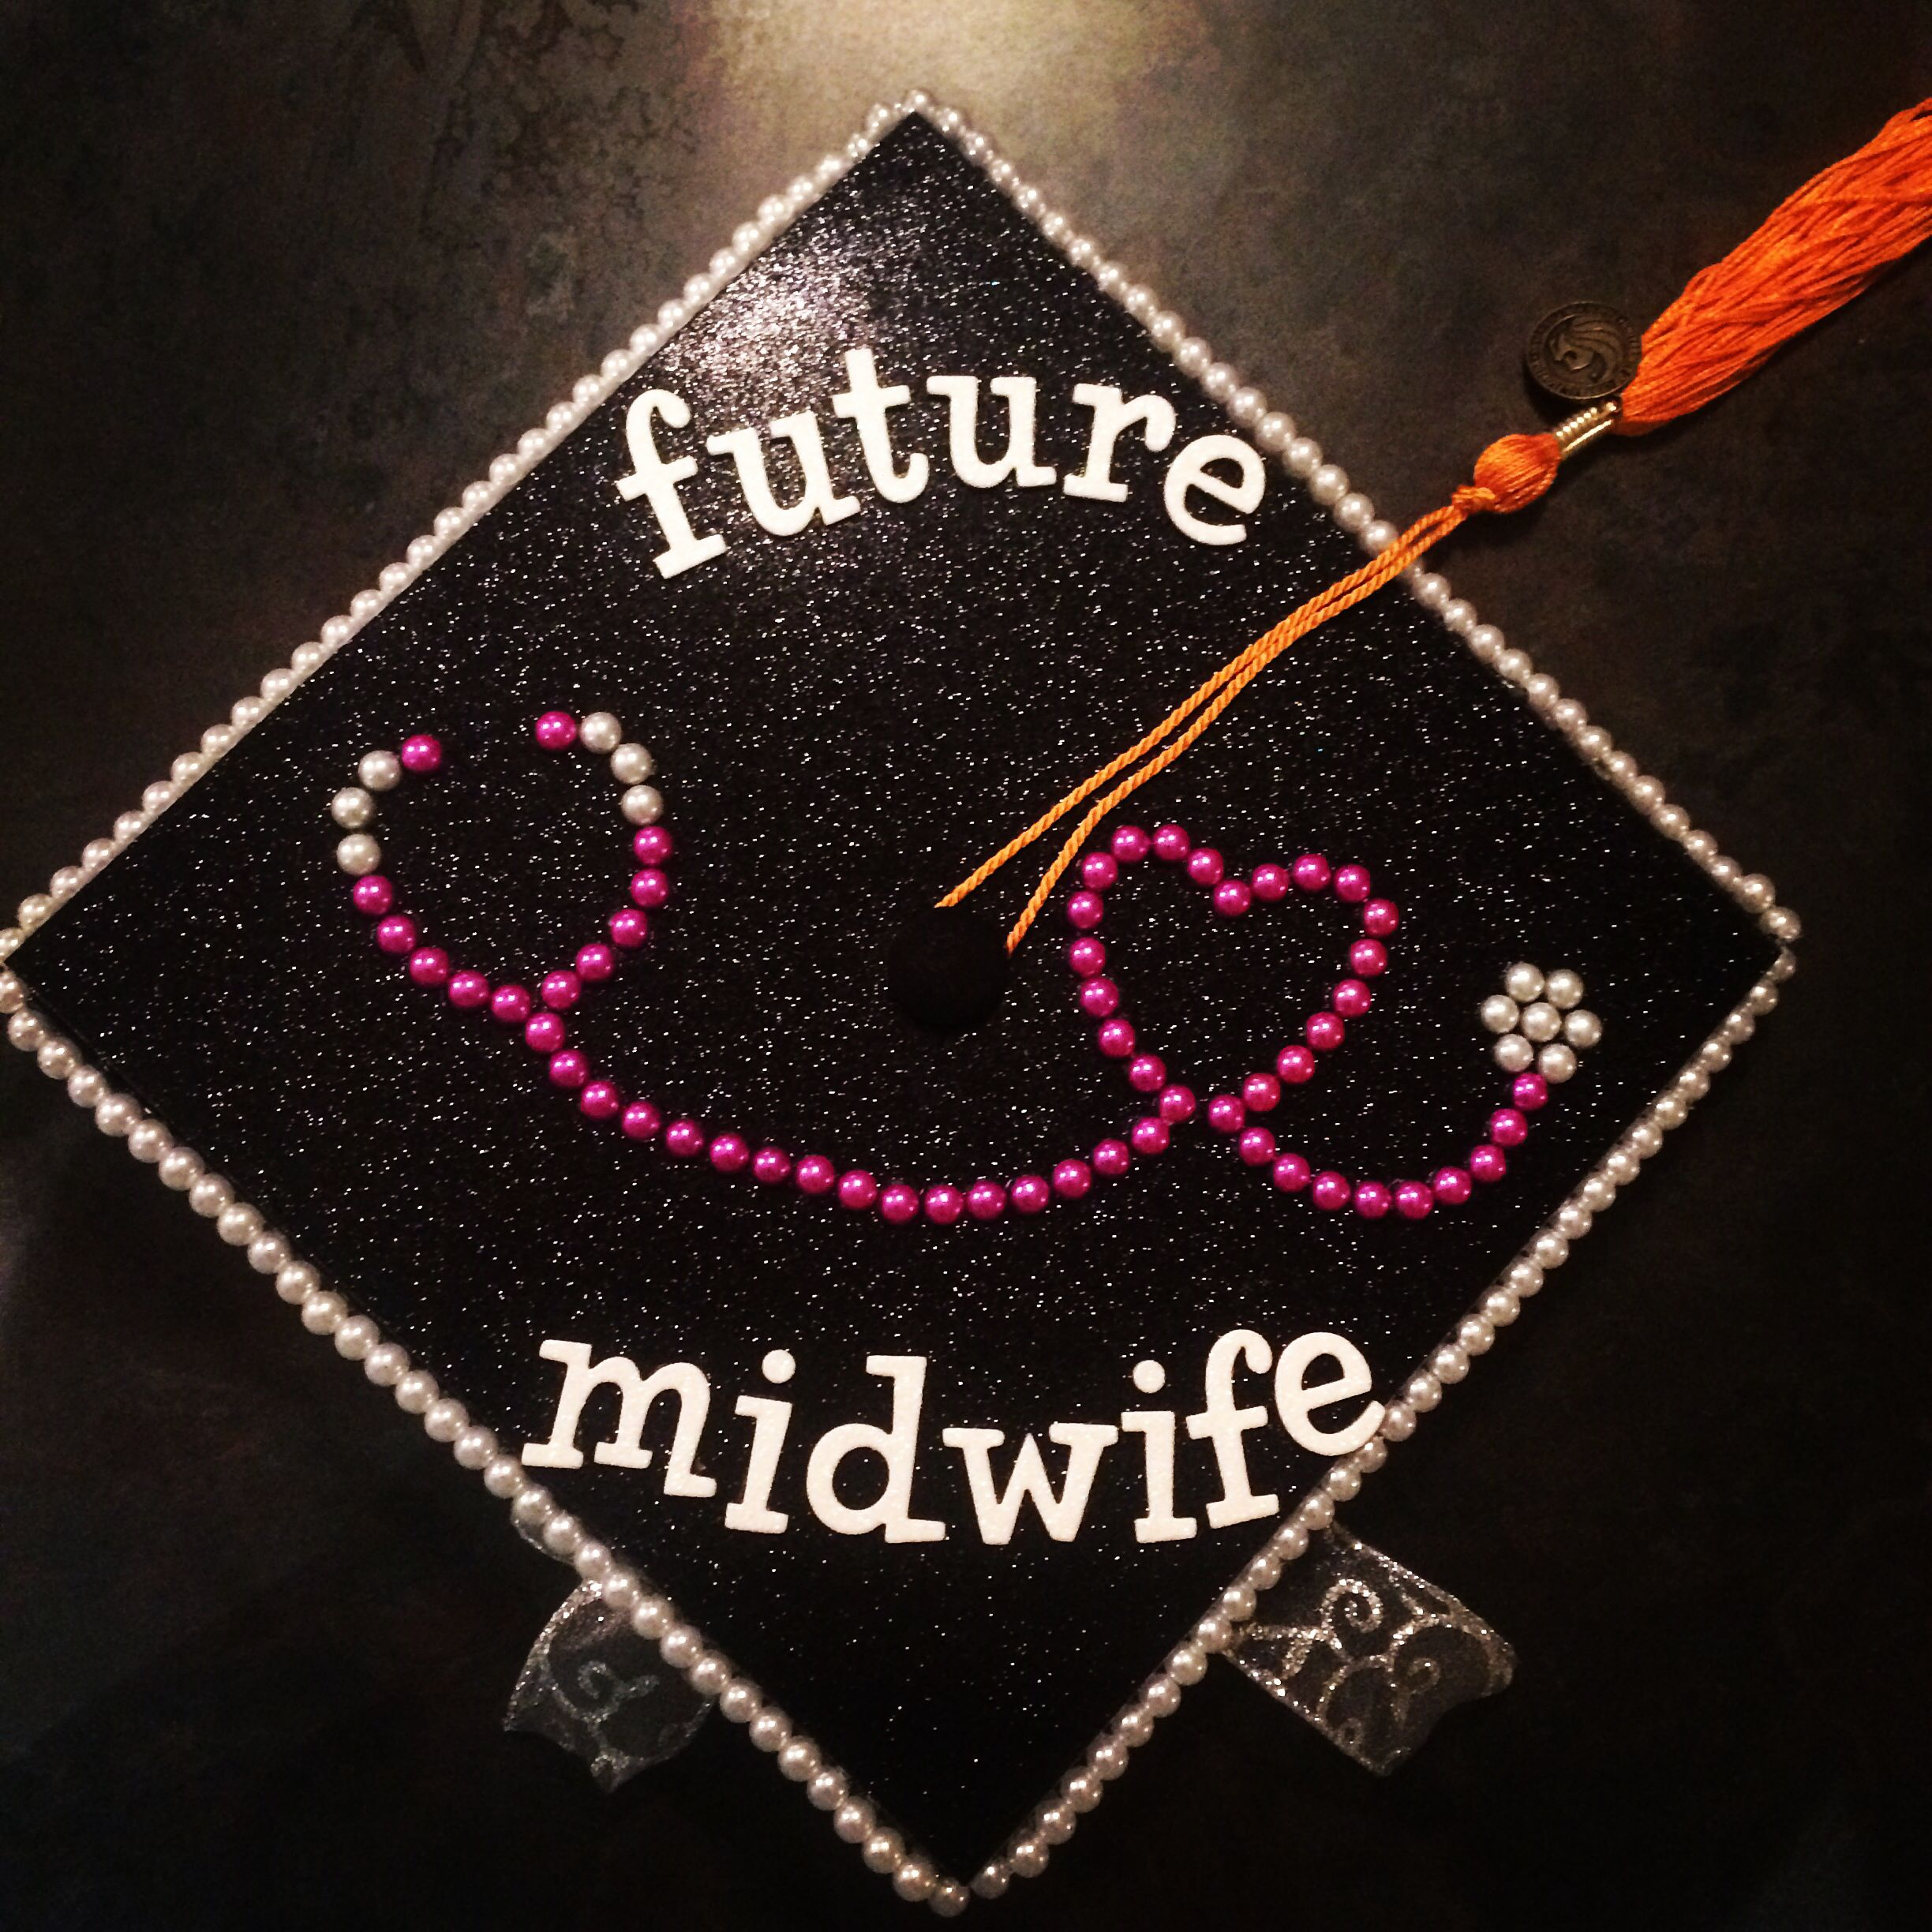 nursing graduation cap future nurse midwife nerd future nurse midwife